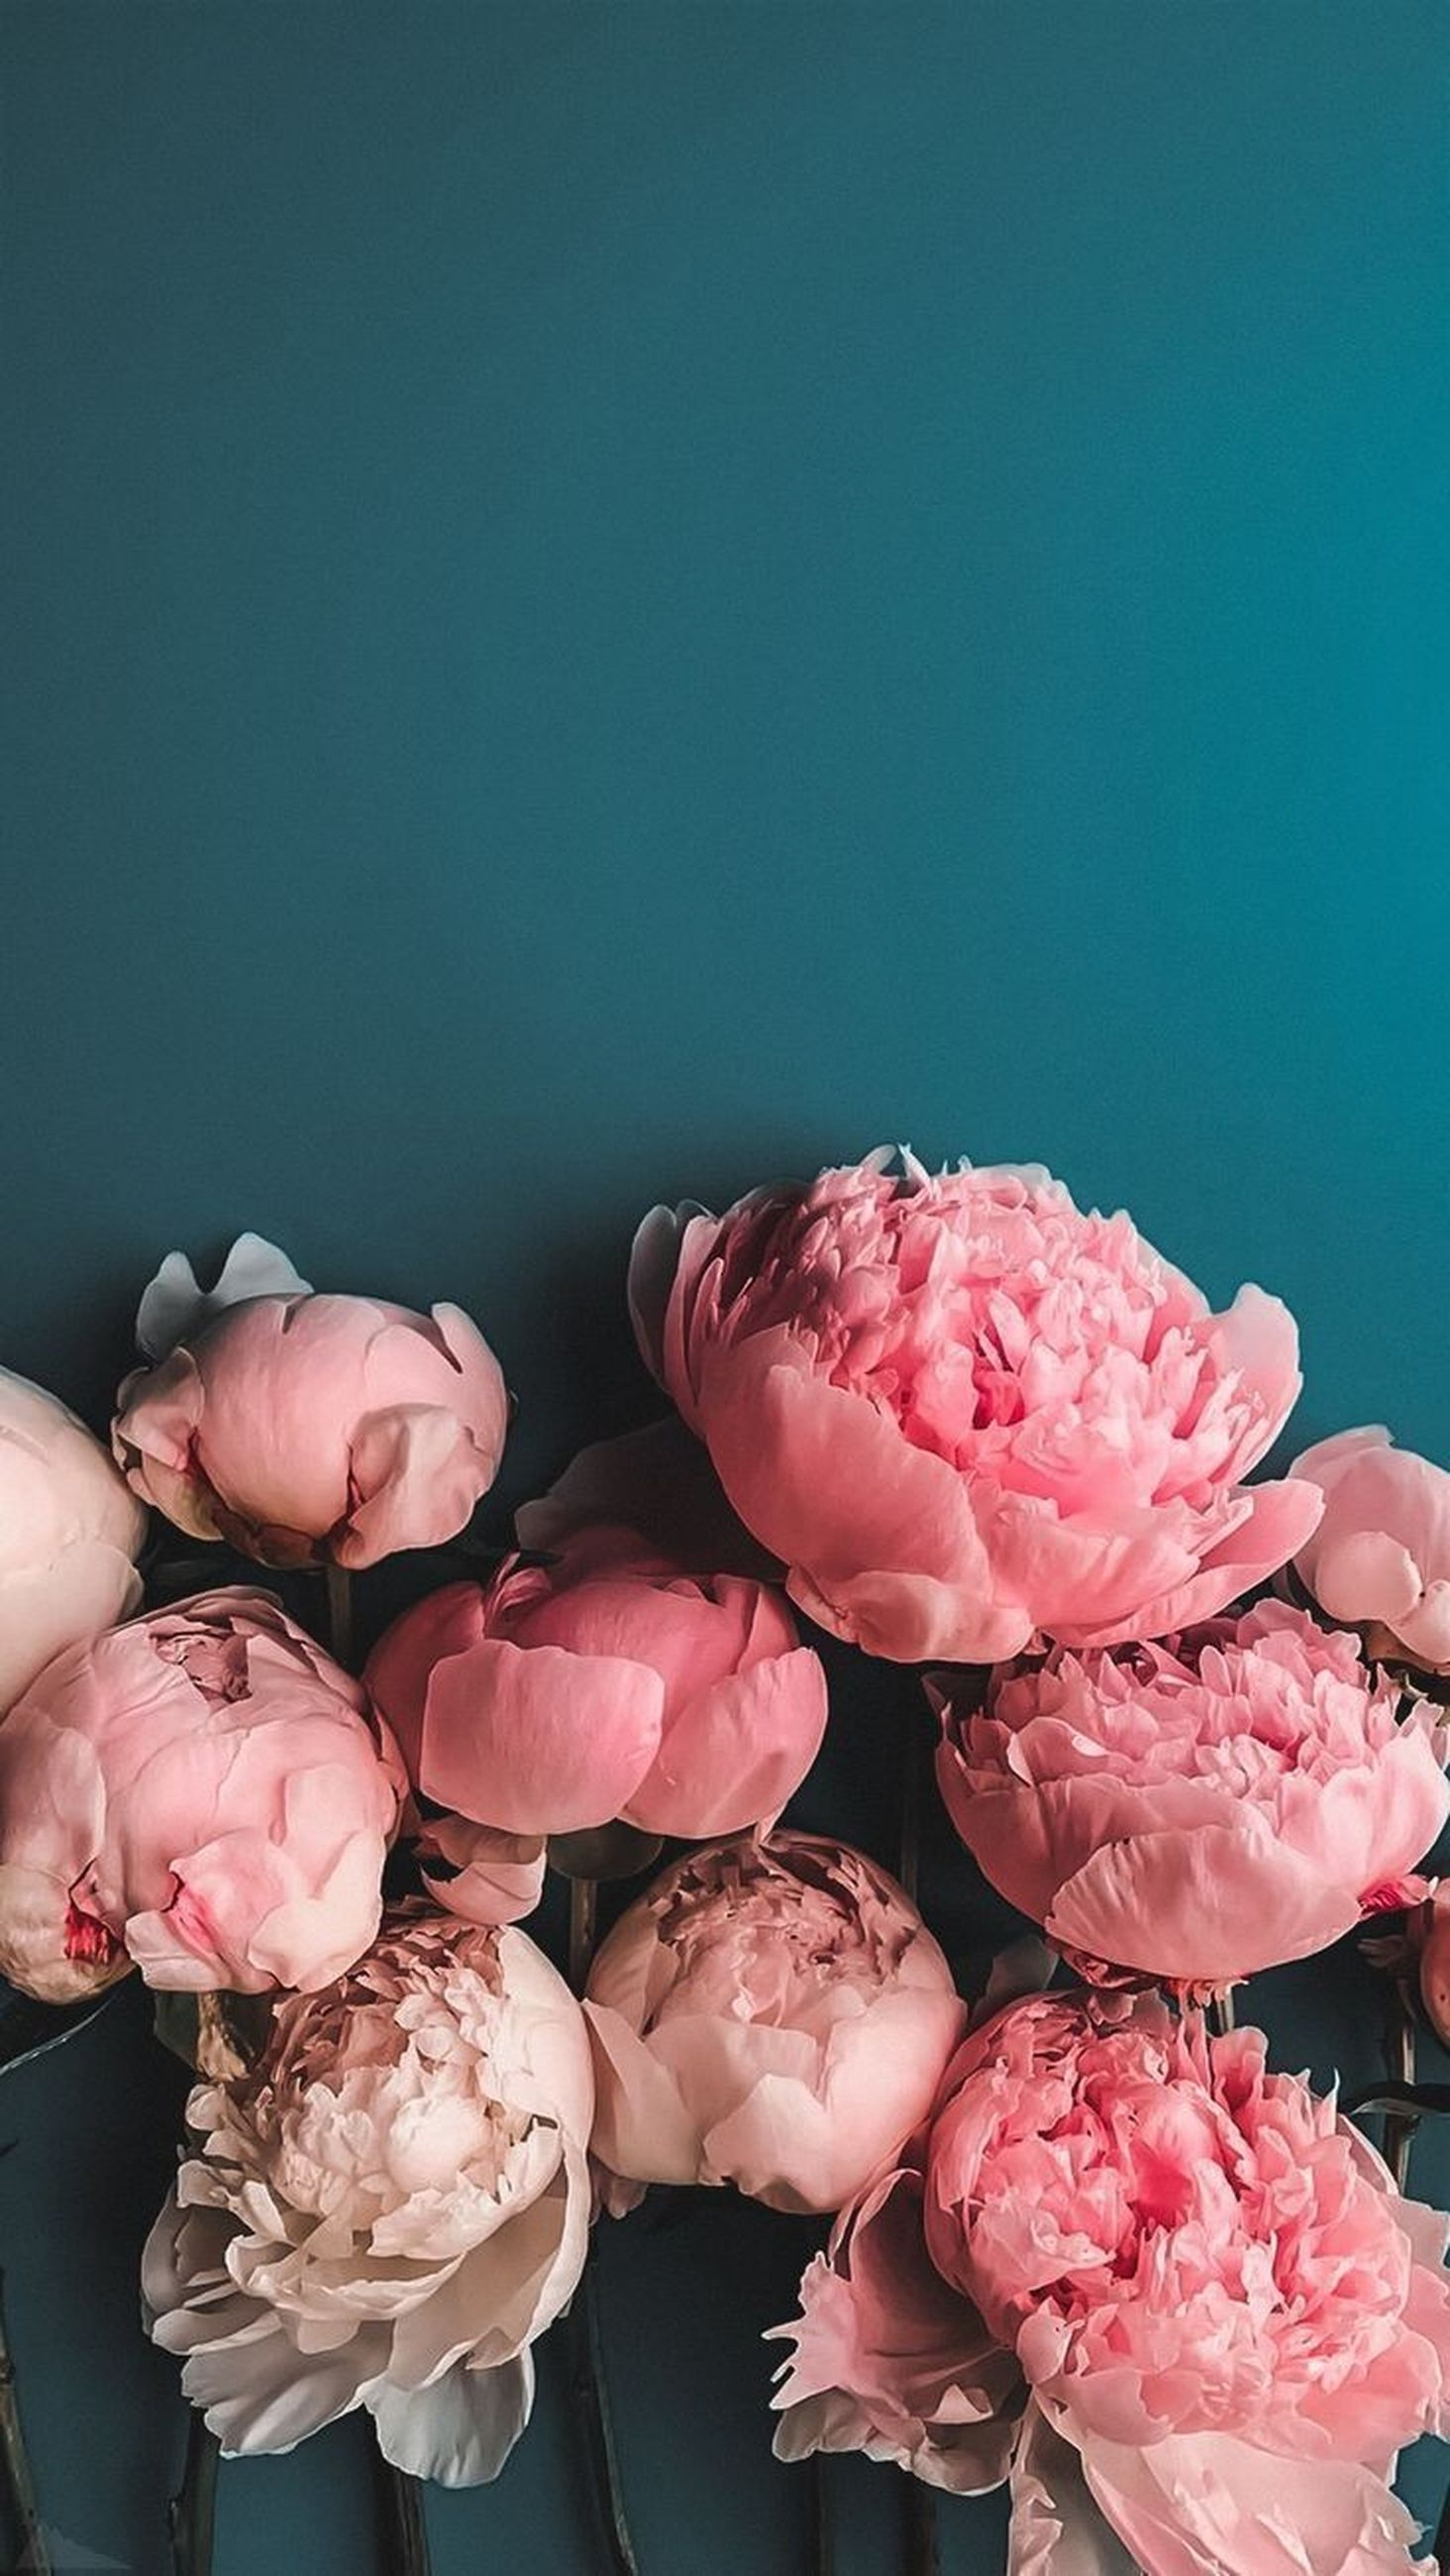 flowering plant, flower, pink color, beauty in nature, plant, freshness, fragility, vulnerability, petal, copy space, close-up, flower head, nature, indoors, inflorescence, studio shot, no people, rose, blue, high angle view, flower arrangement, bouquet, blue background, bunch of flowers